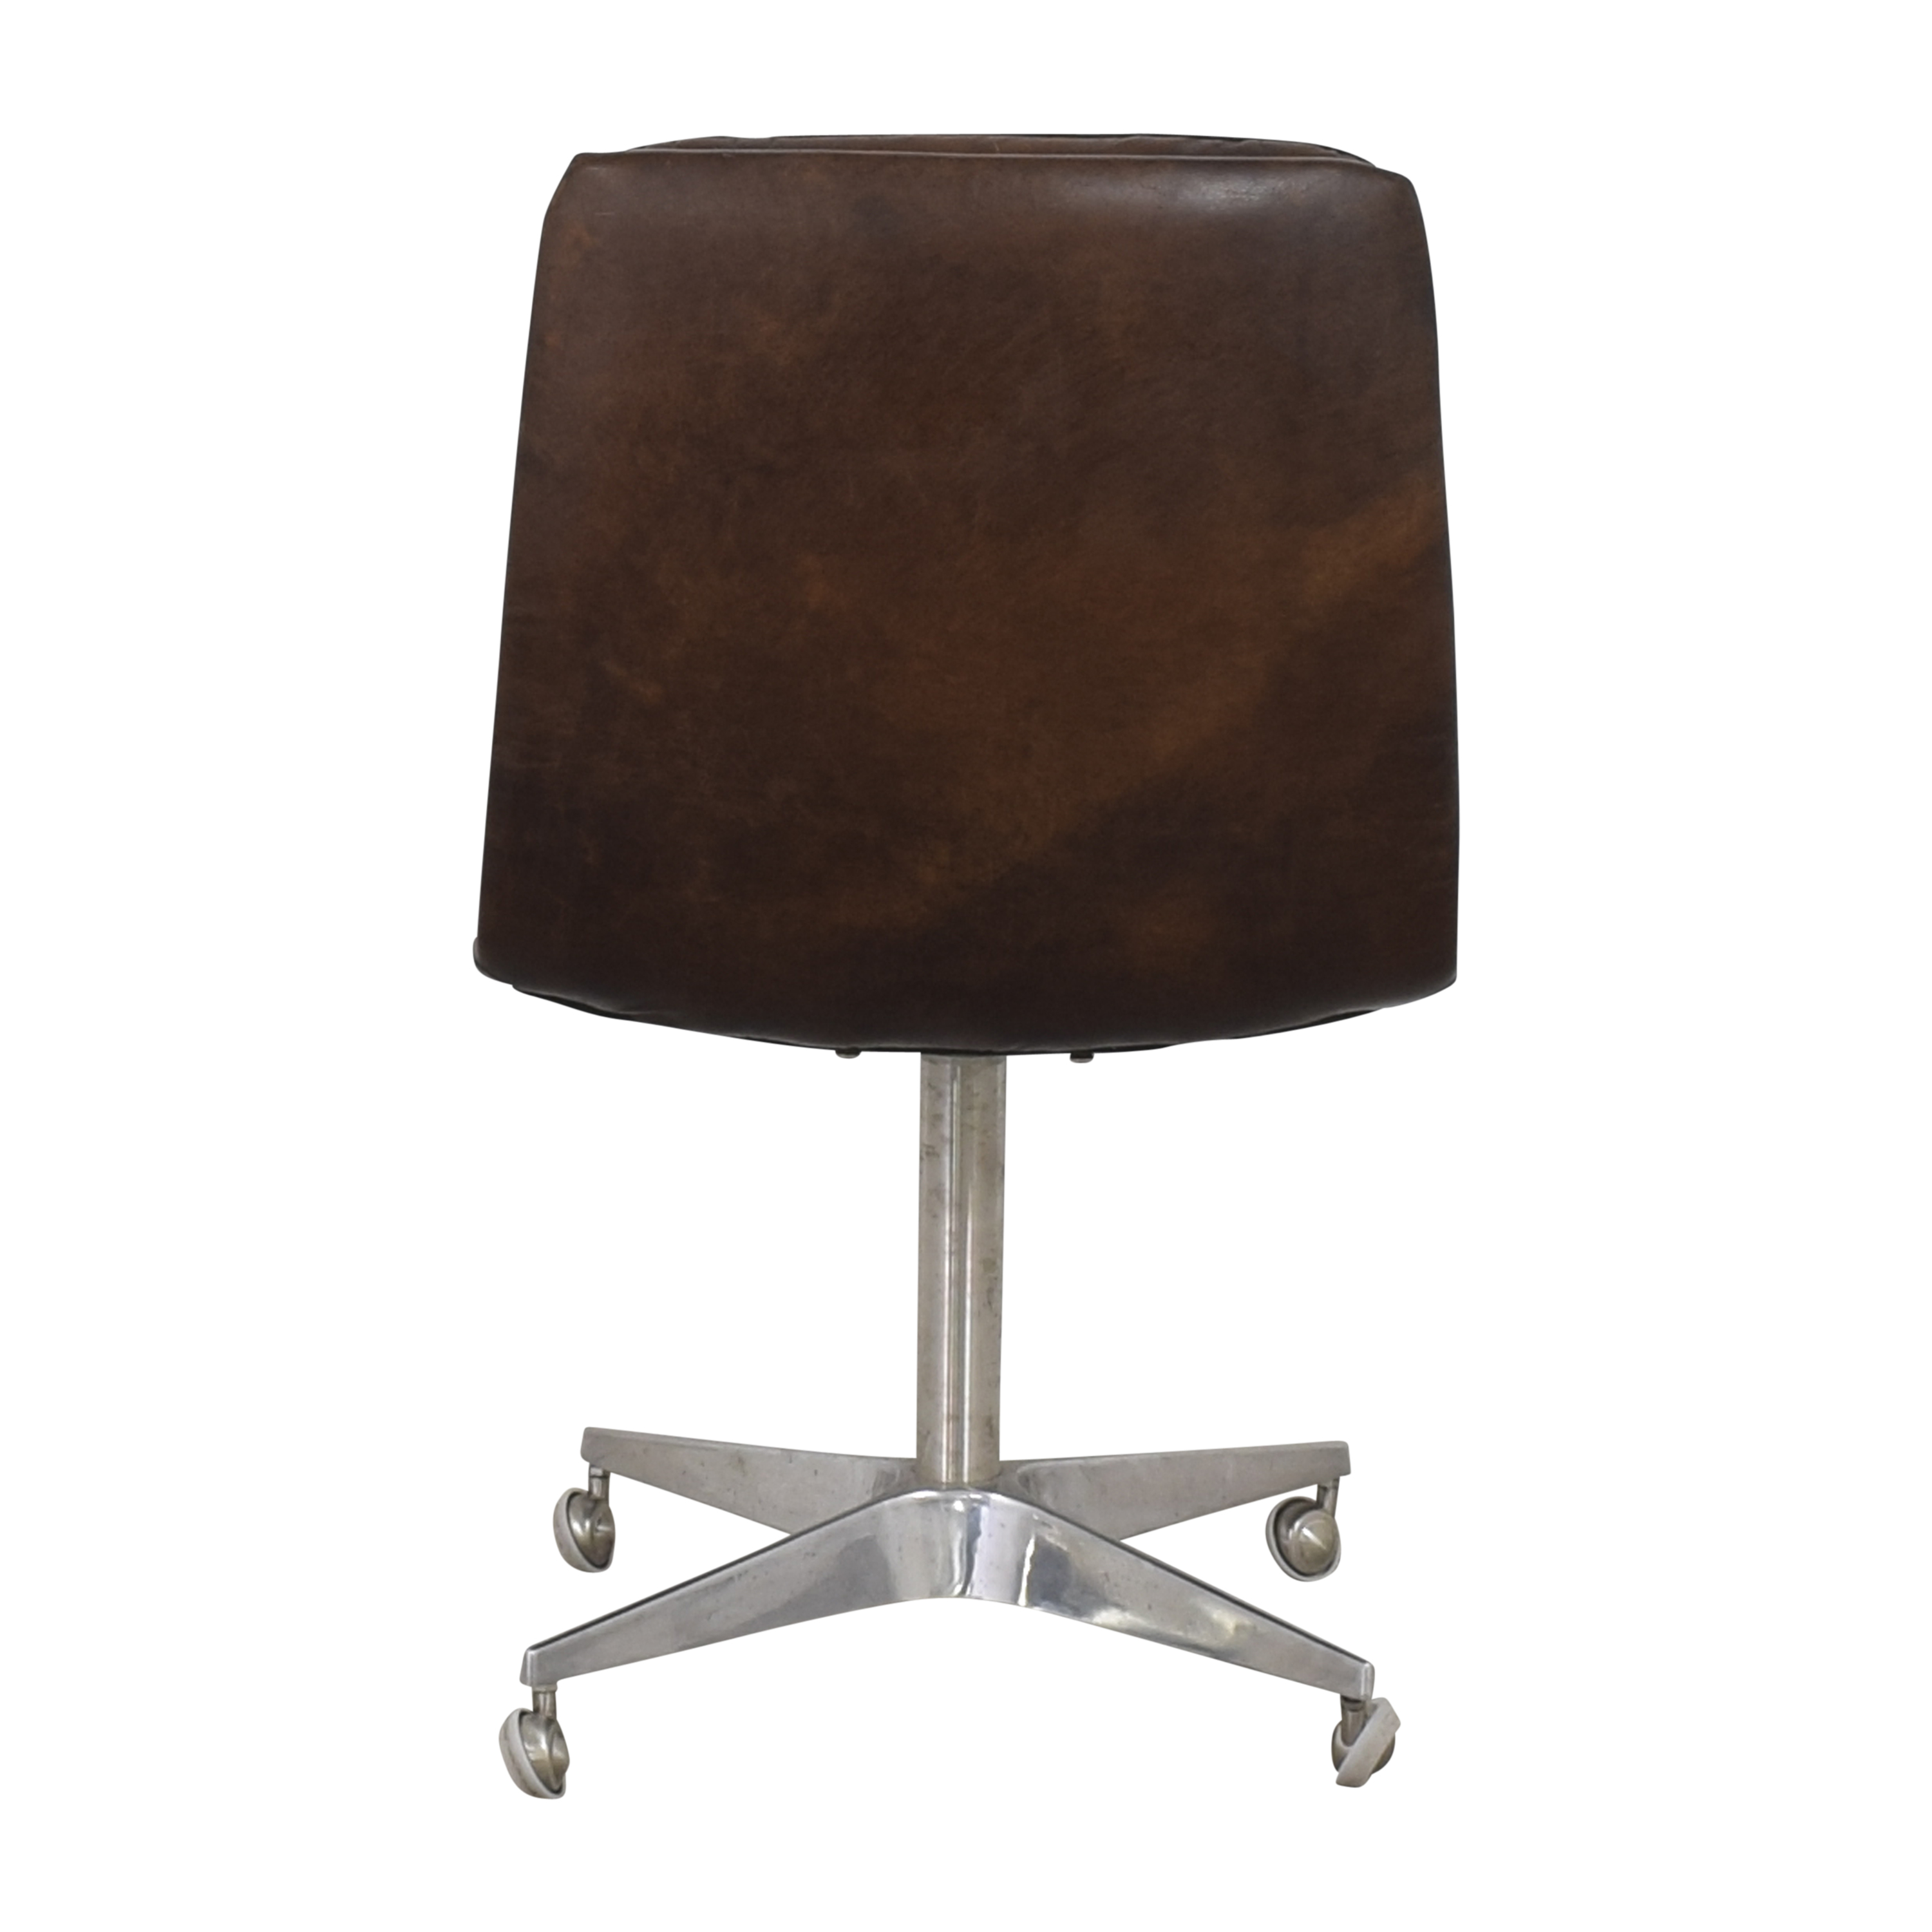 Restoration Hardware Griffith Desk Chair / Home Office Chairs